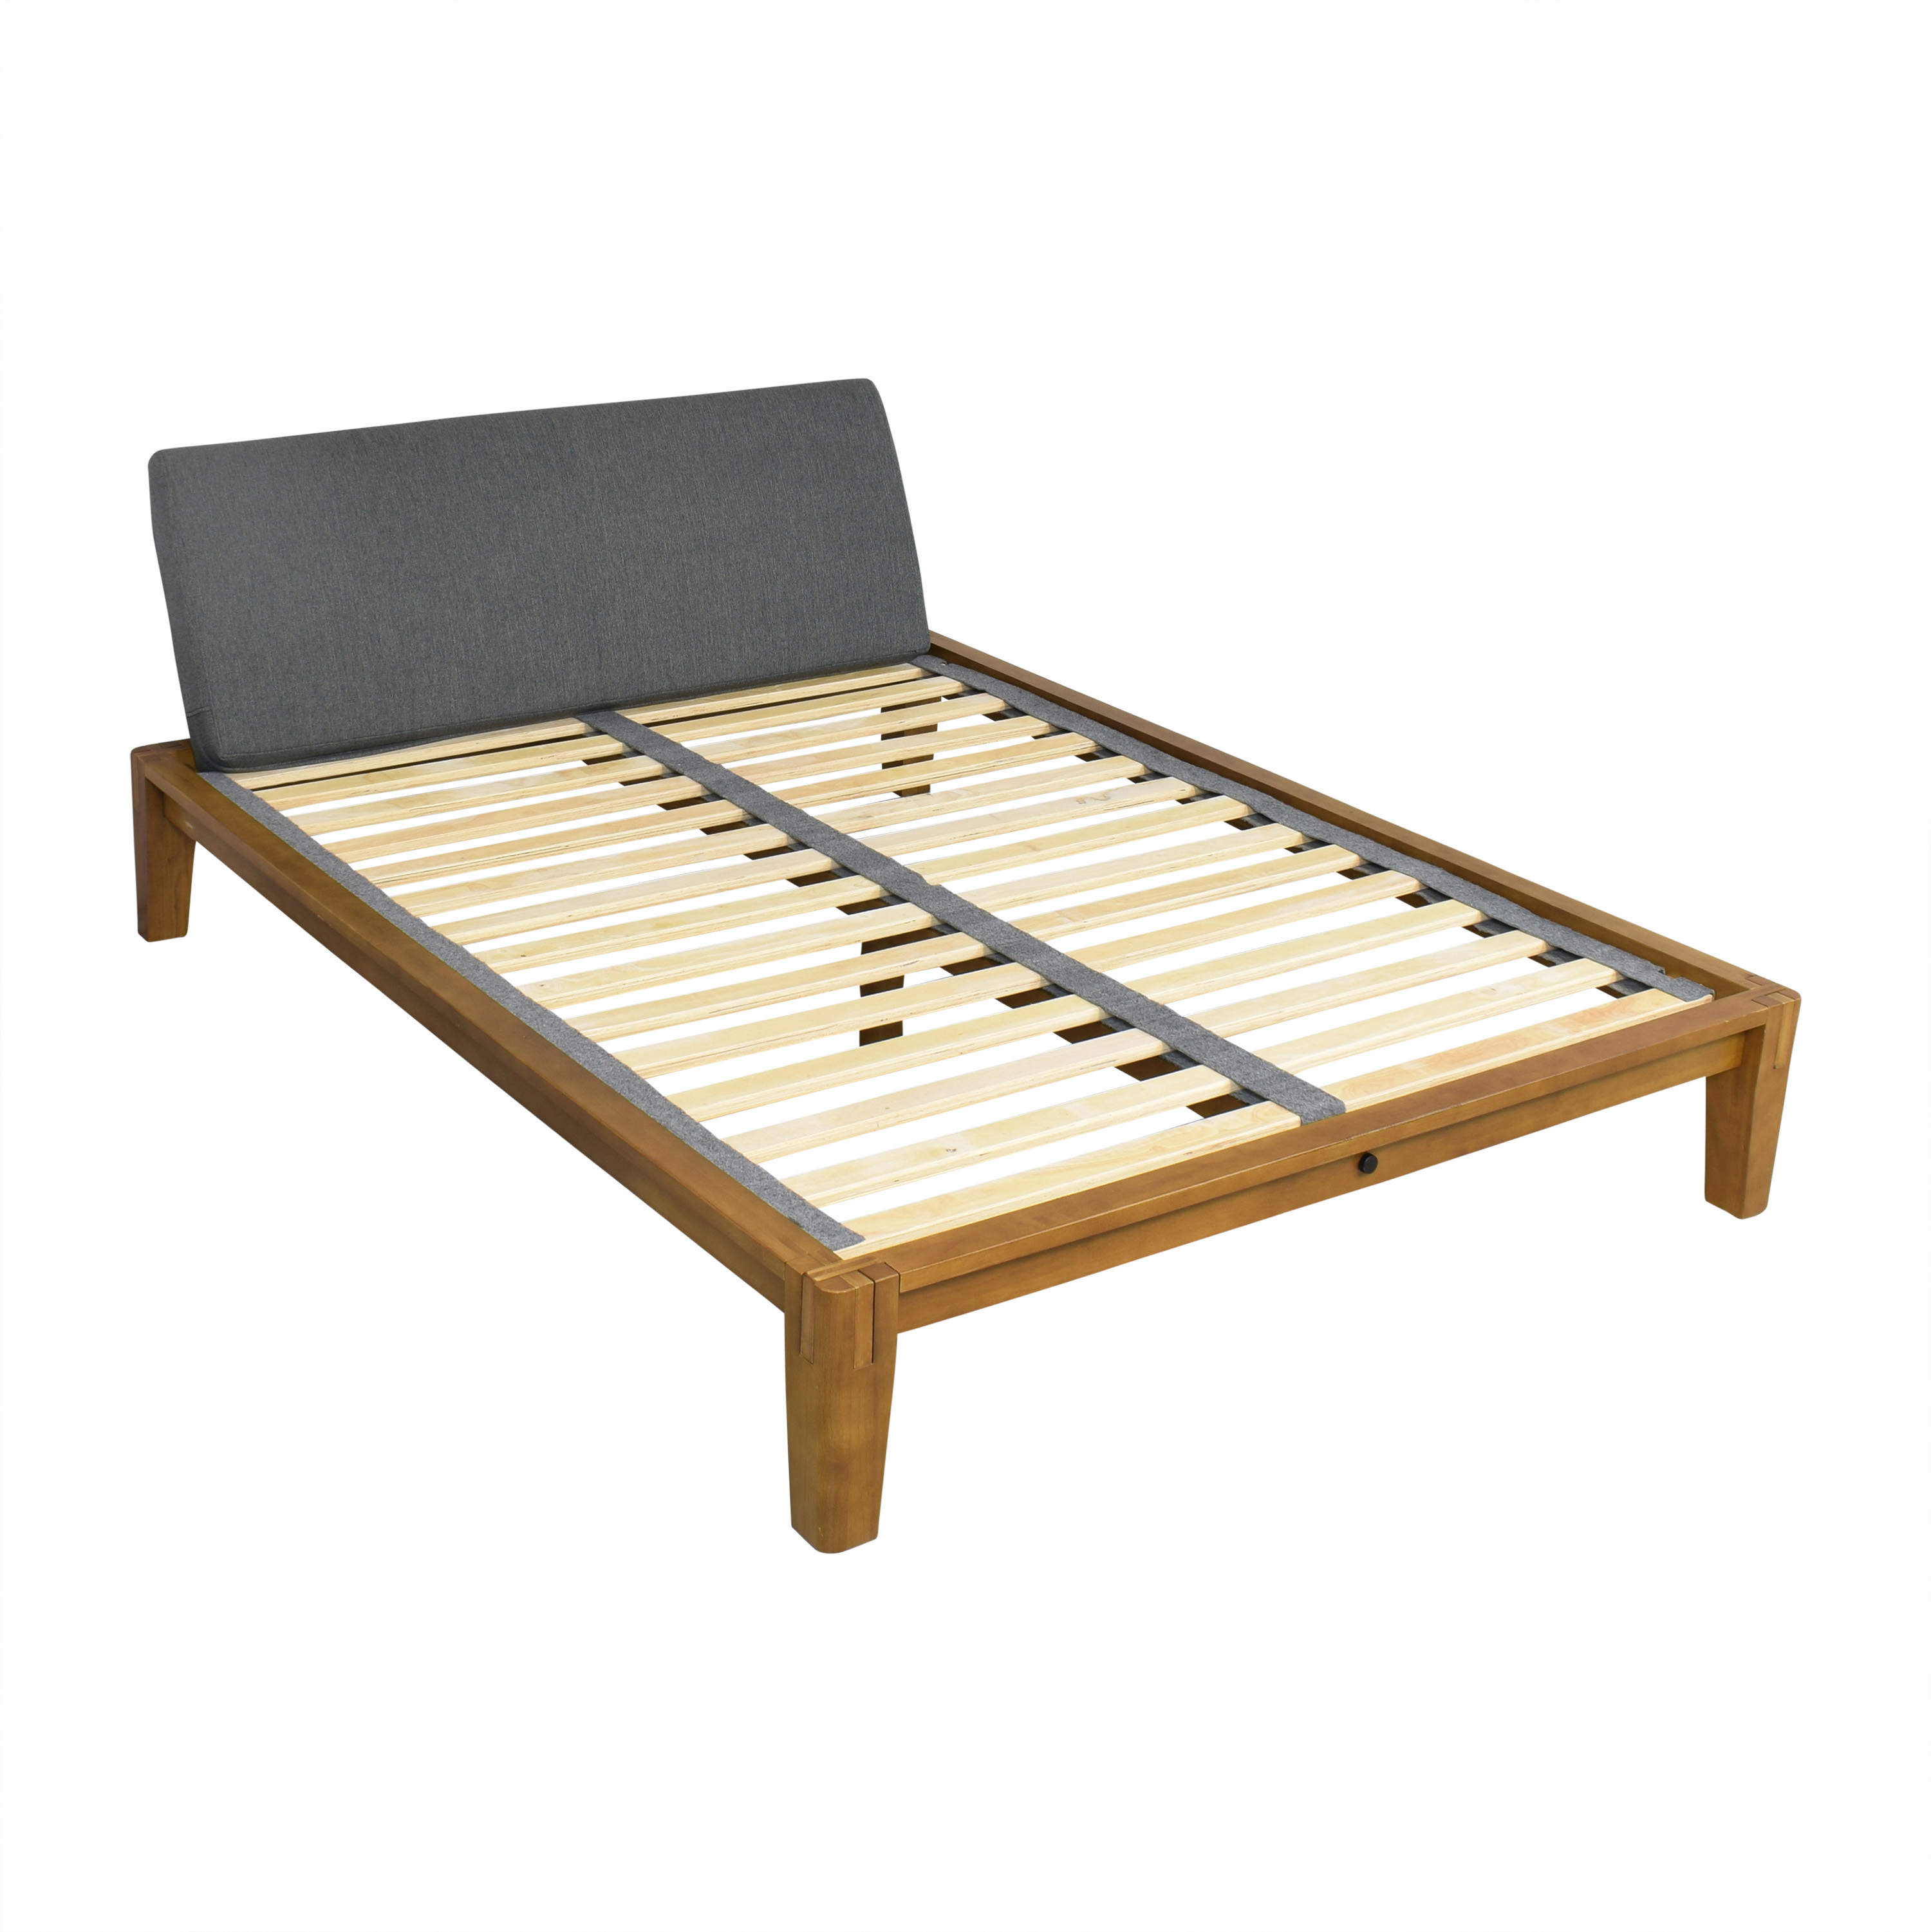 21 Off Thuma Thuma The Bed Queen Frame Beds